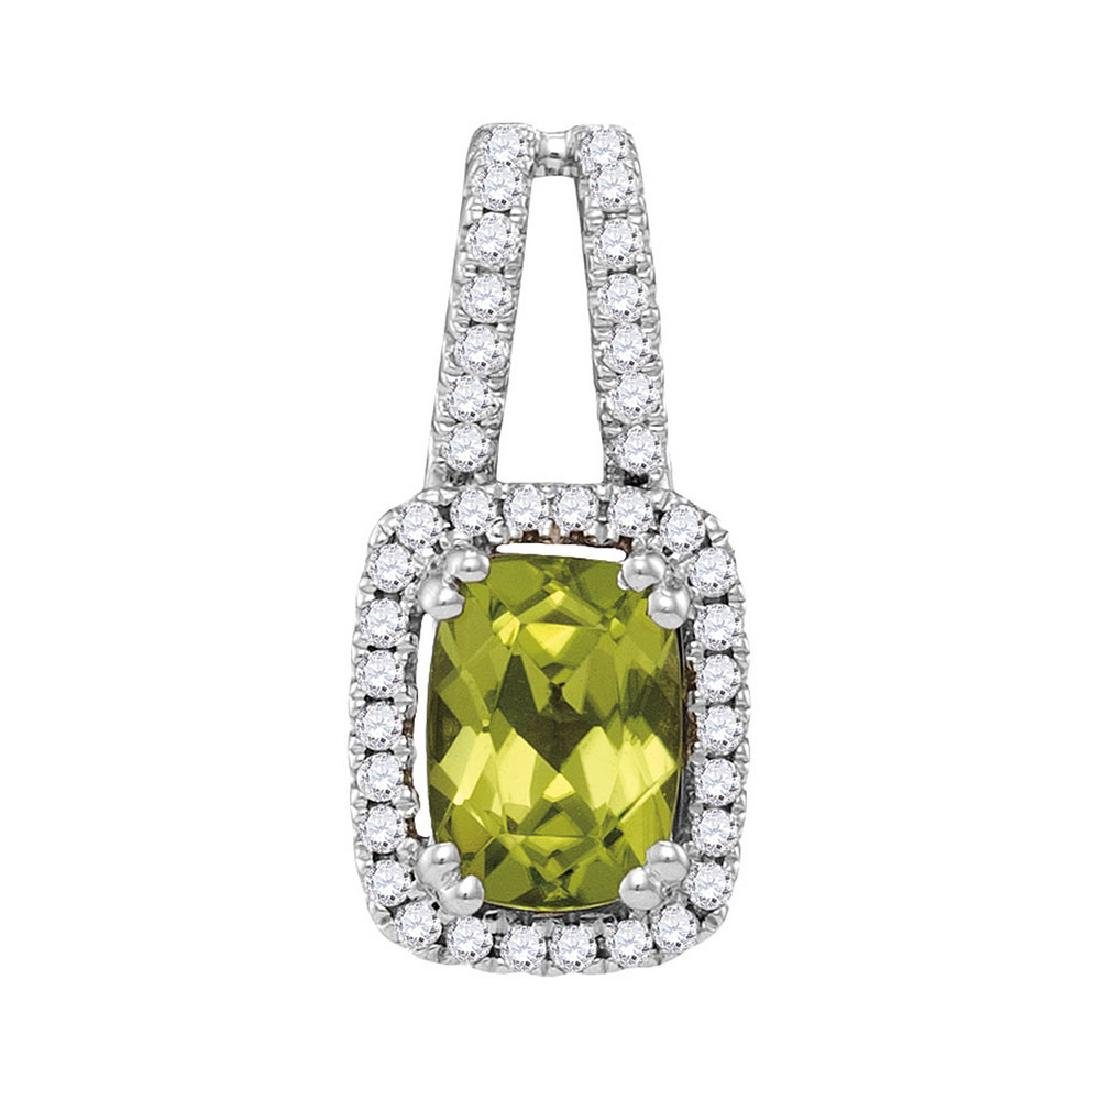 1.18 CTW Cushion Peridot Solitaire Diamond Pendant 14KT